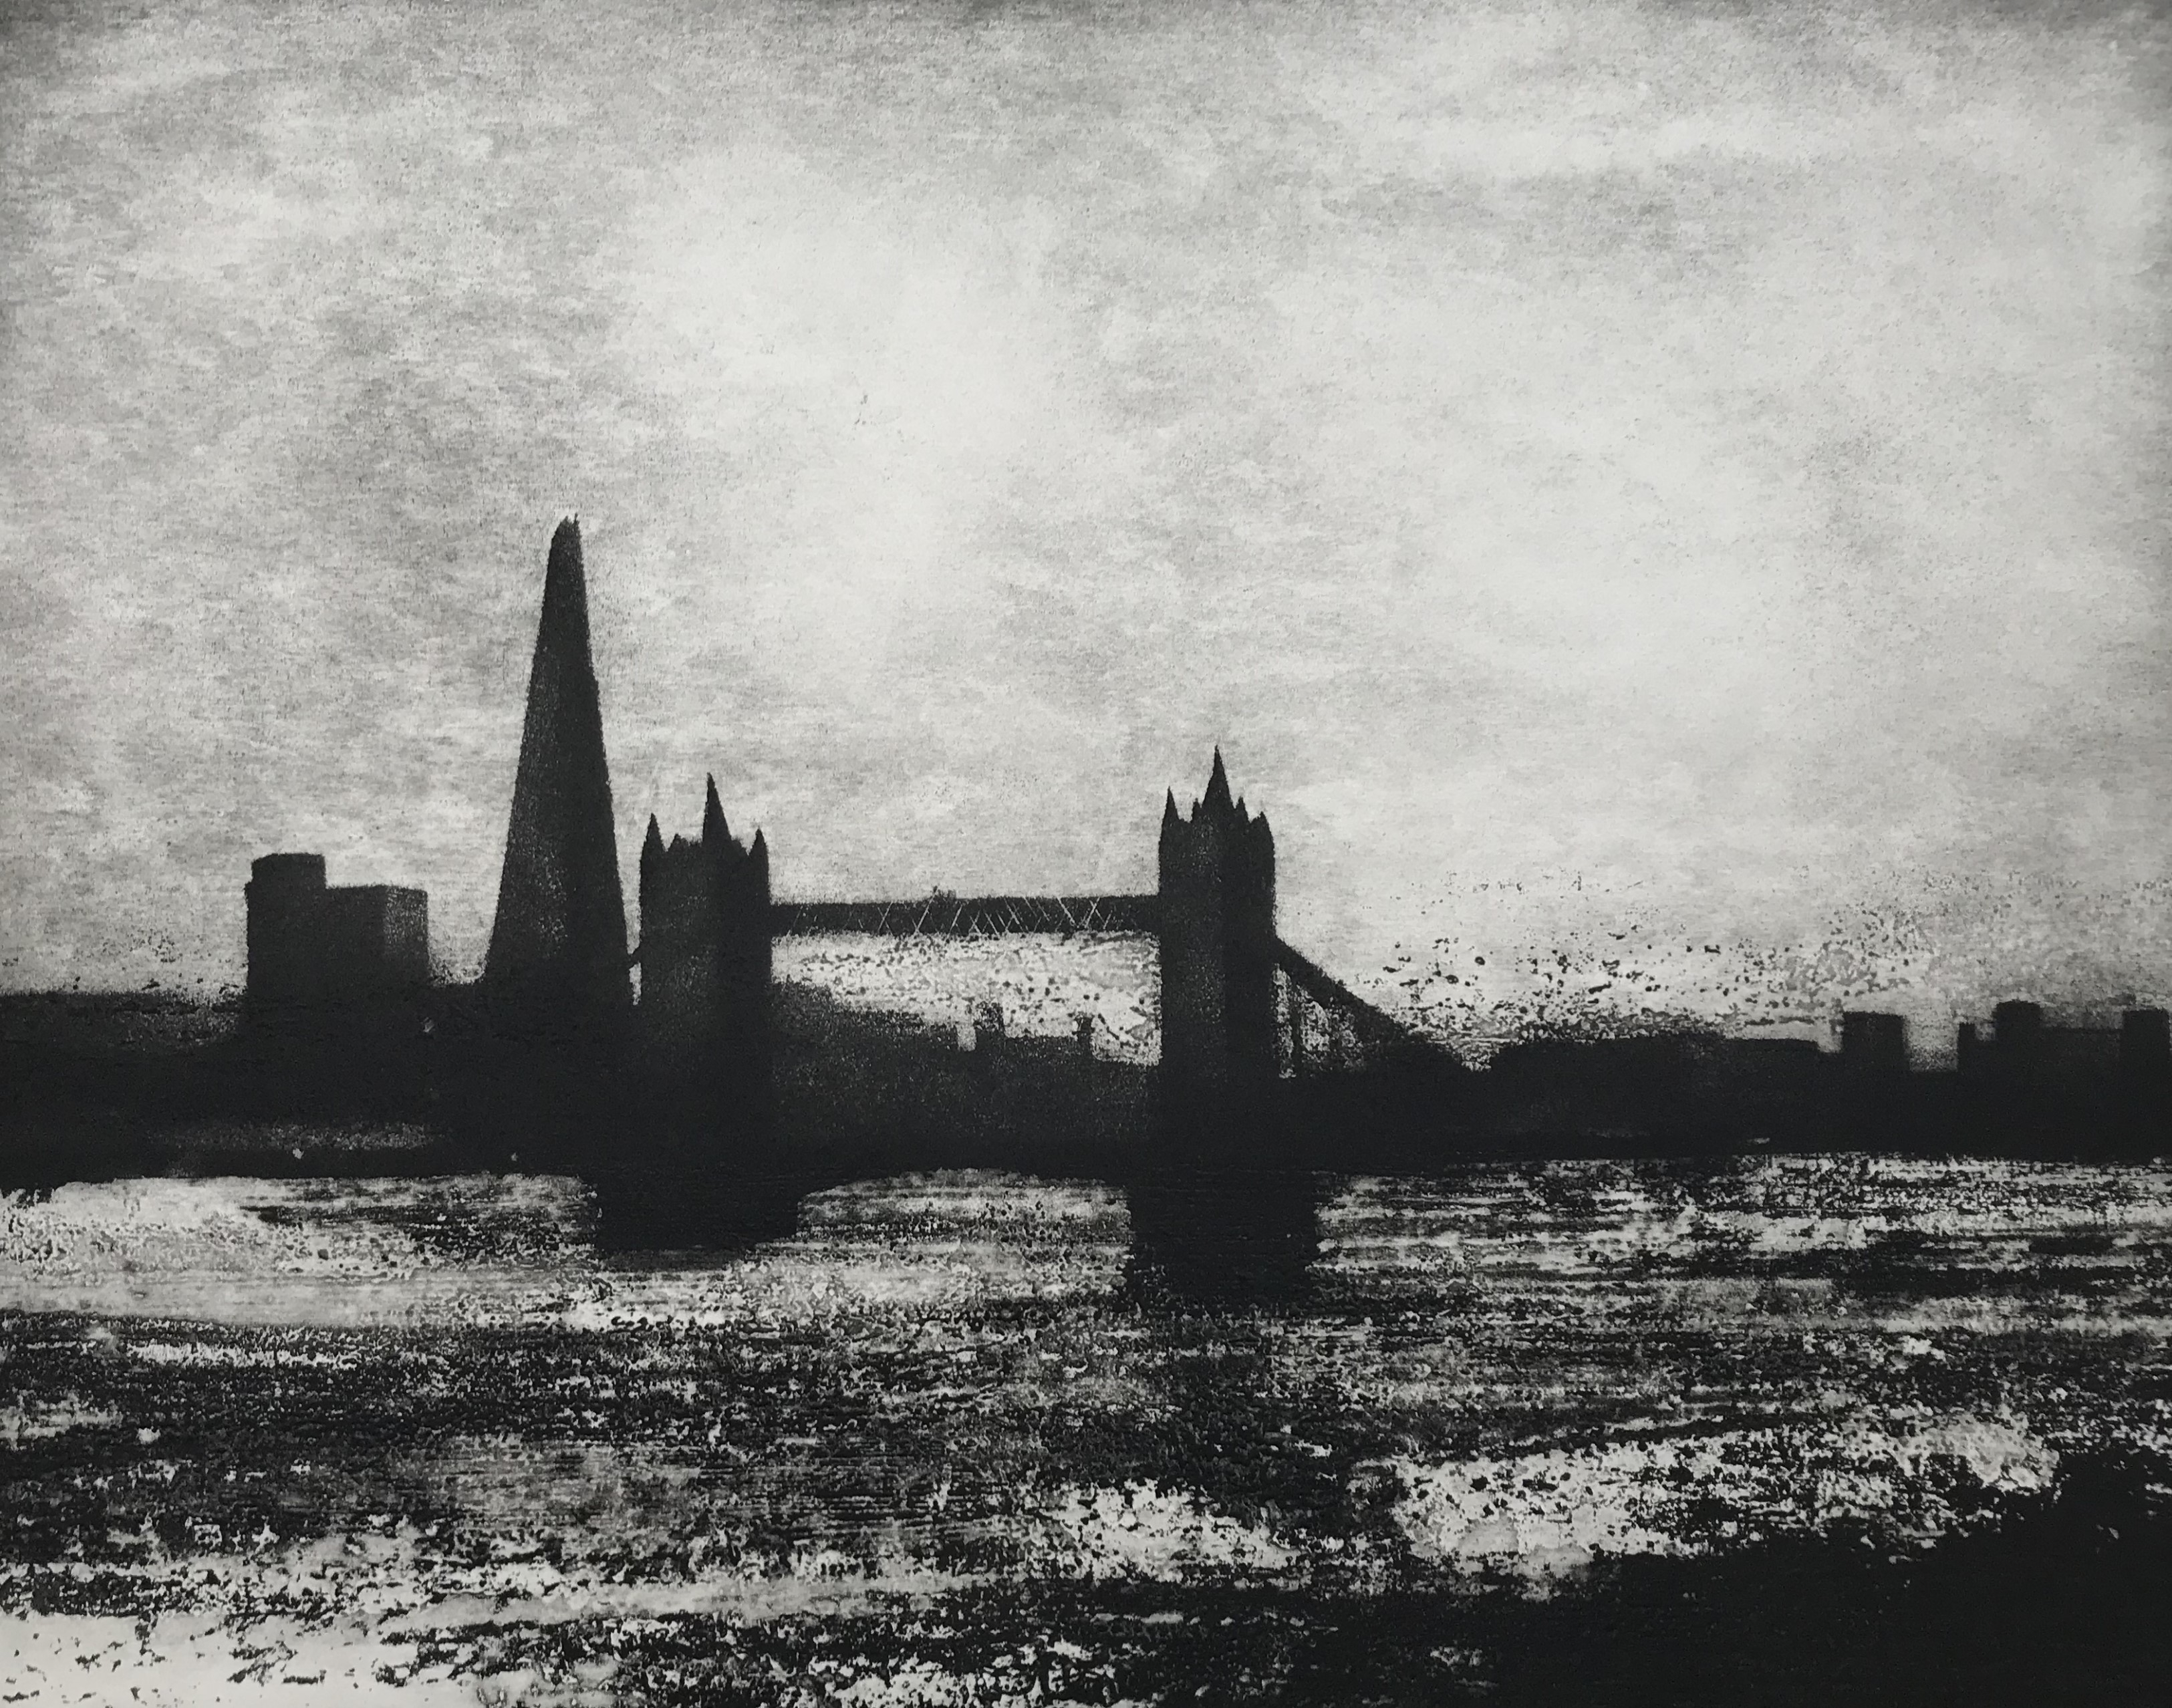 The Thames. Pool of London